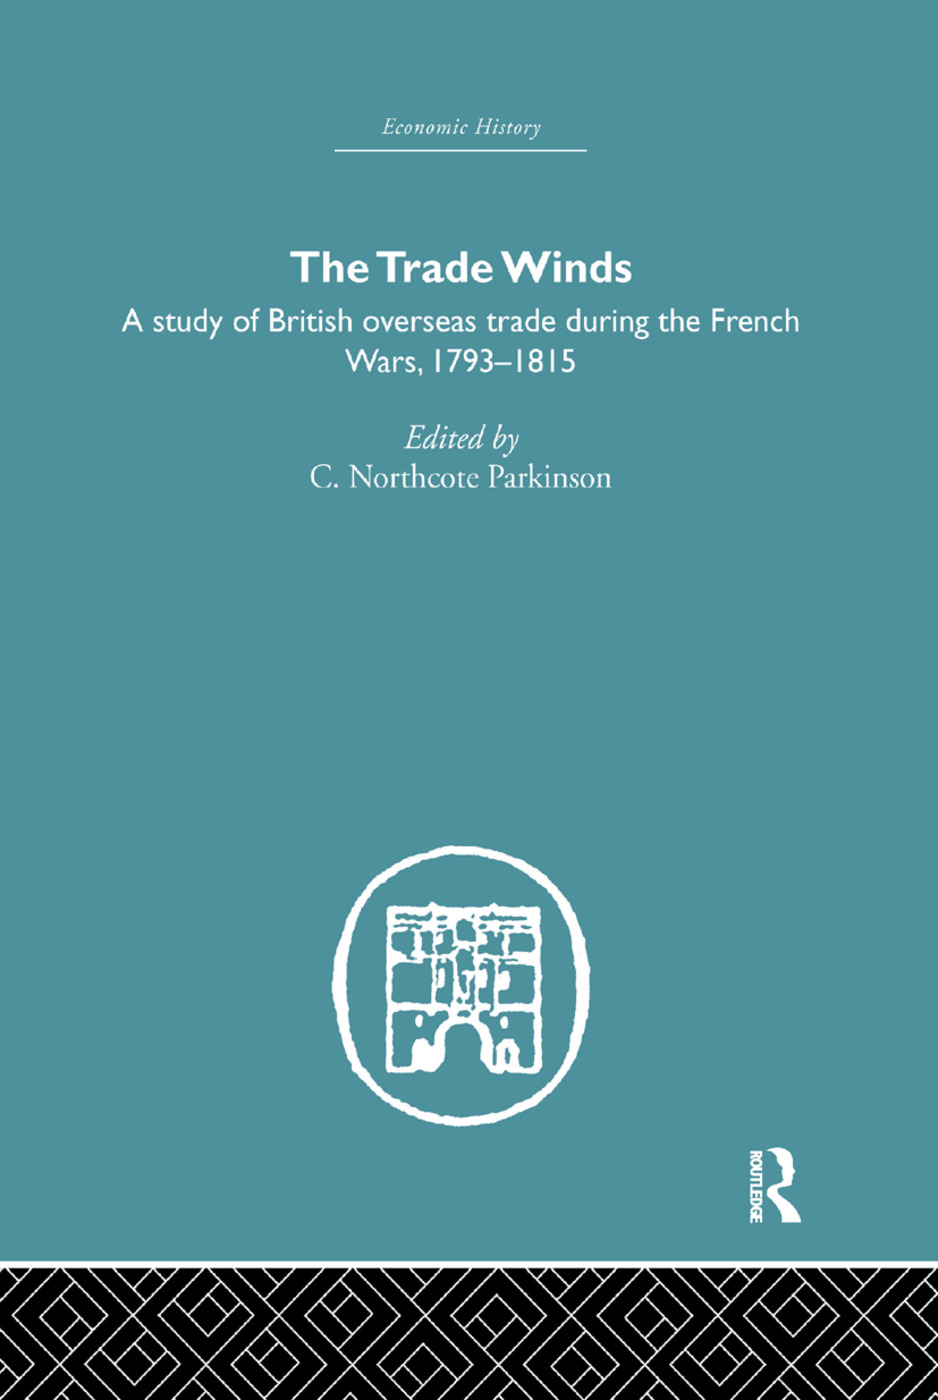 The Trade Winds: A Study of British Overseas Trade During the French Wars 1793-1815 book cover